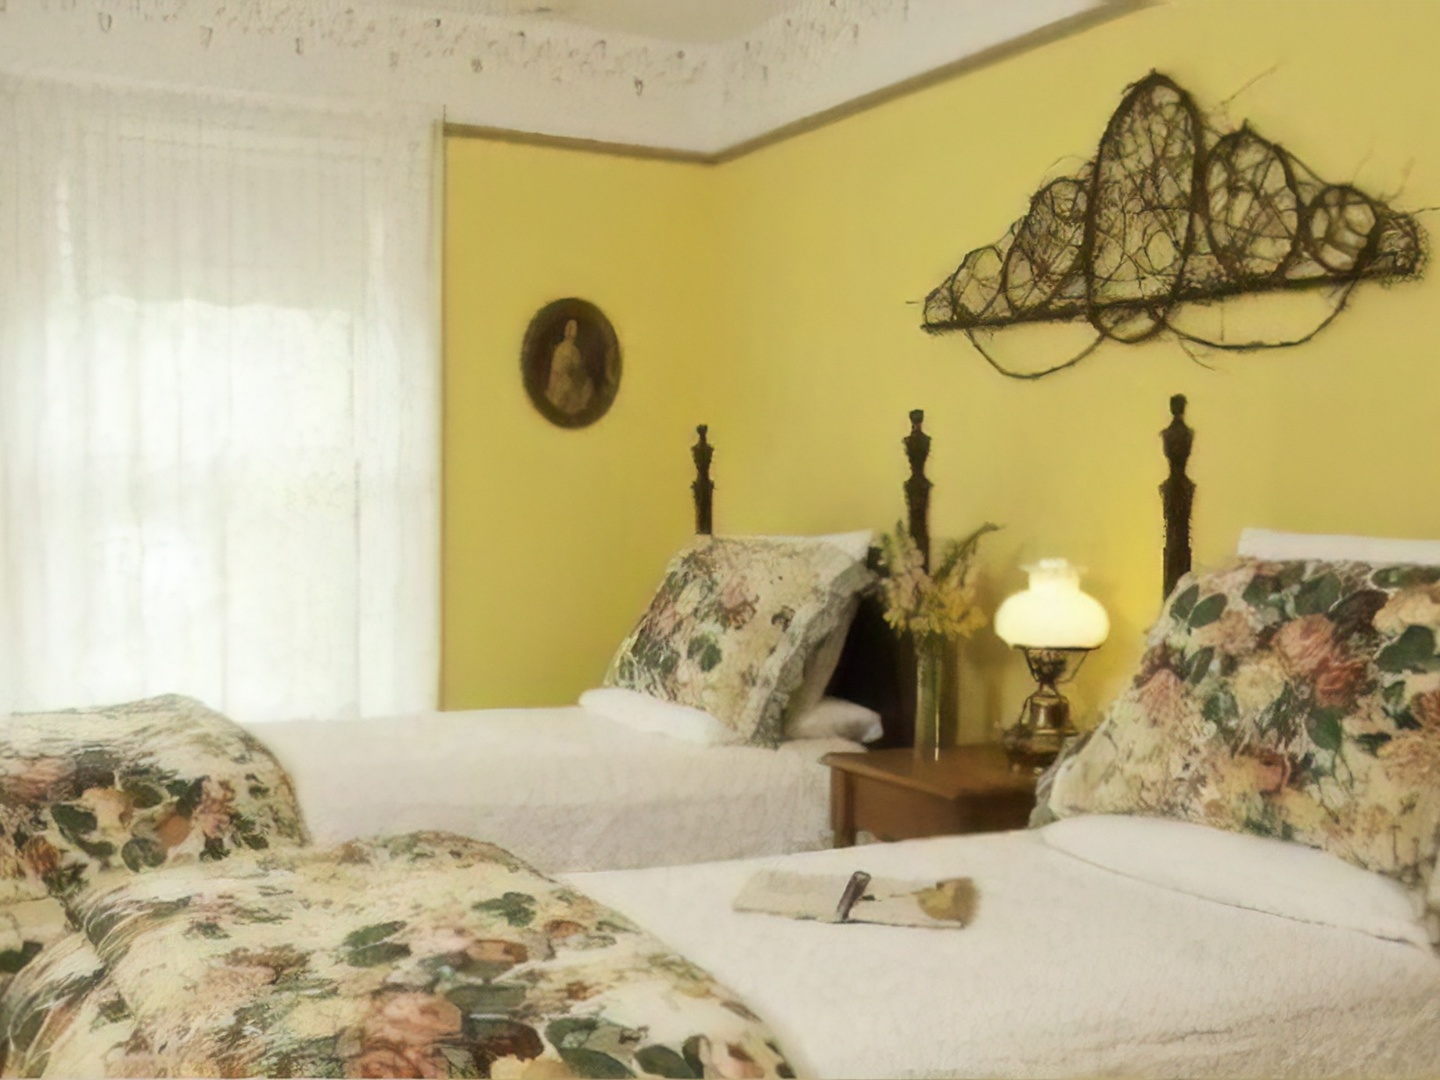 A bedroom with a bed in a hotel room at Golden Stage Inn Bed and Breakfast.